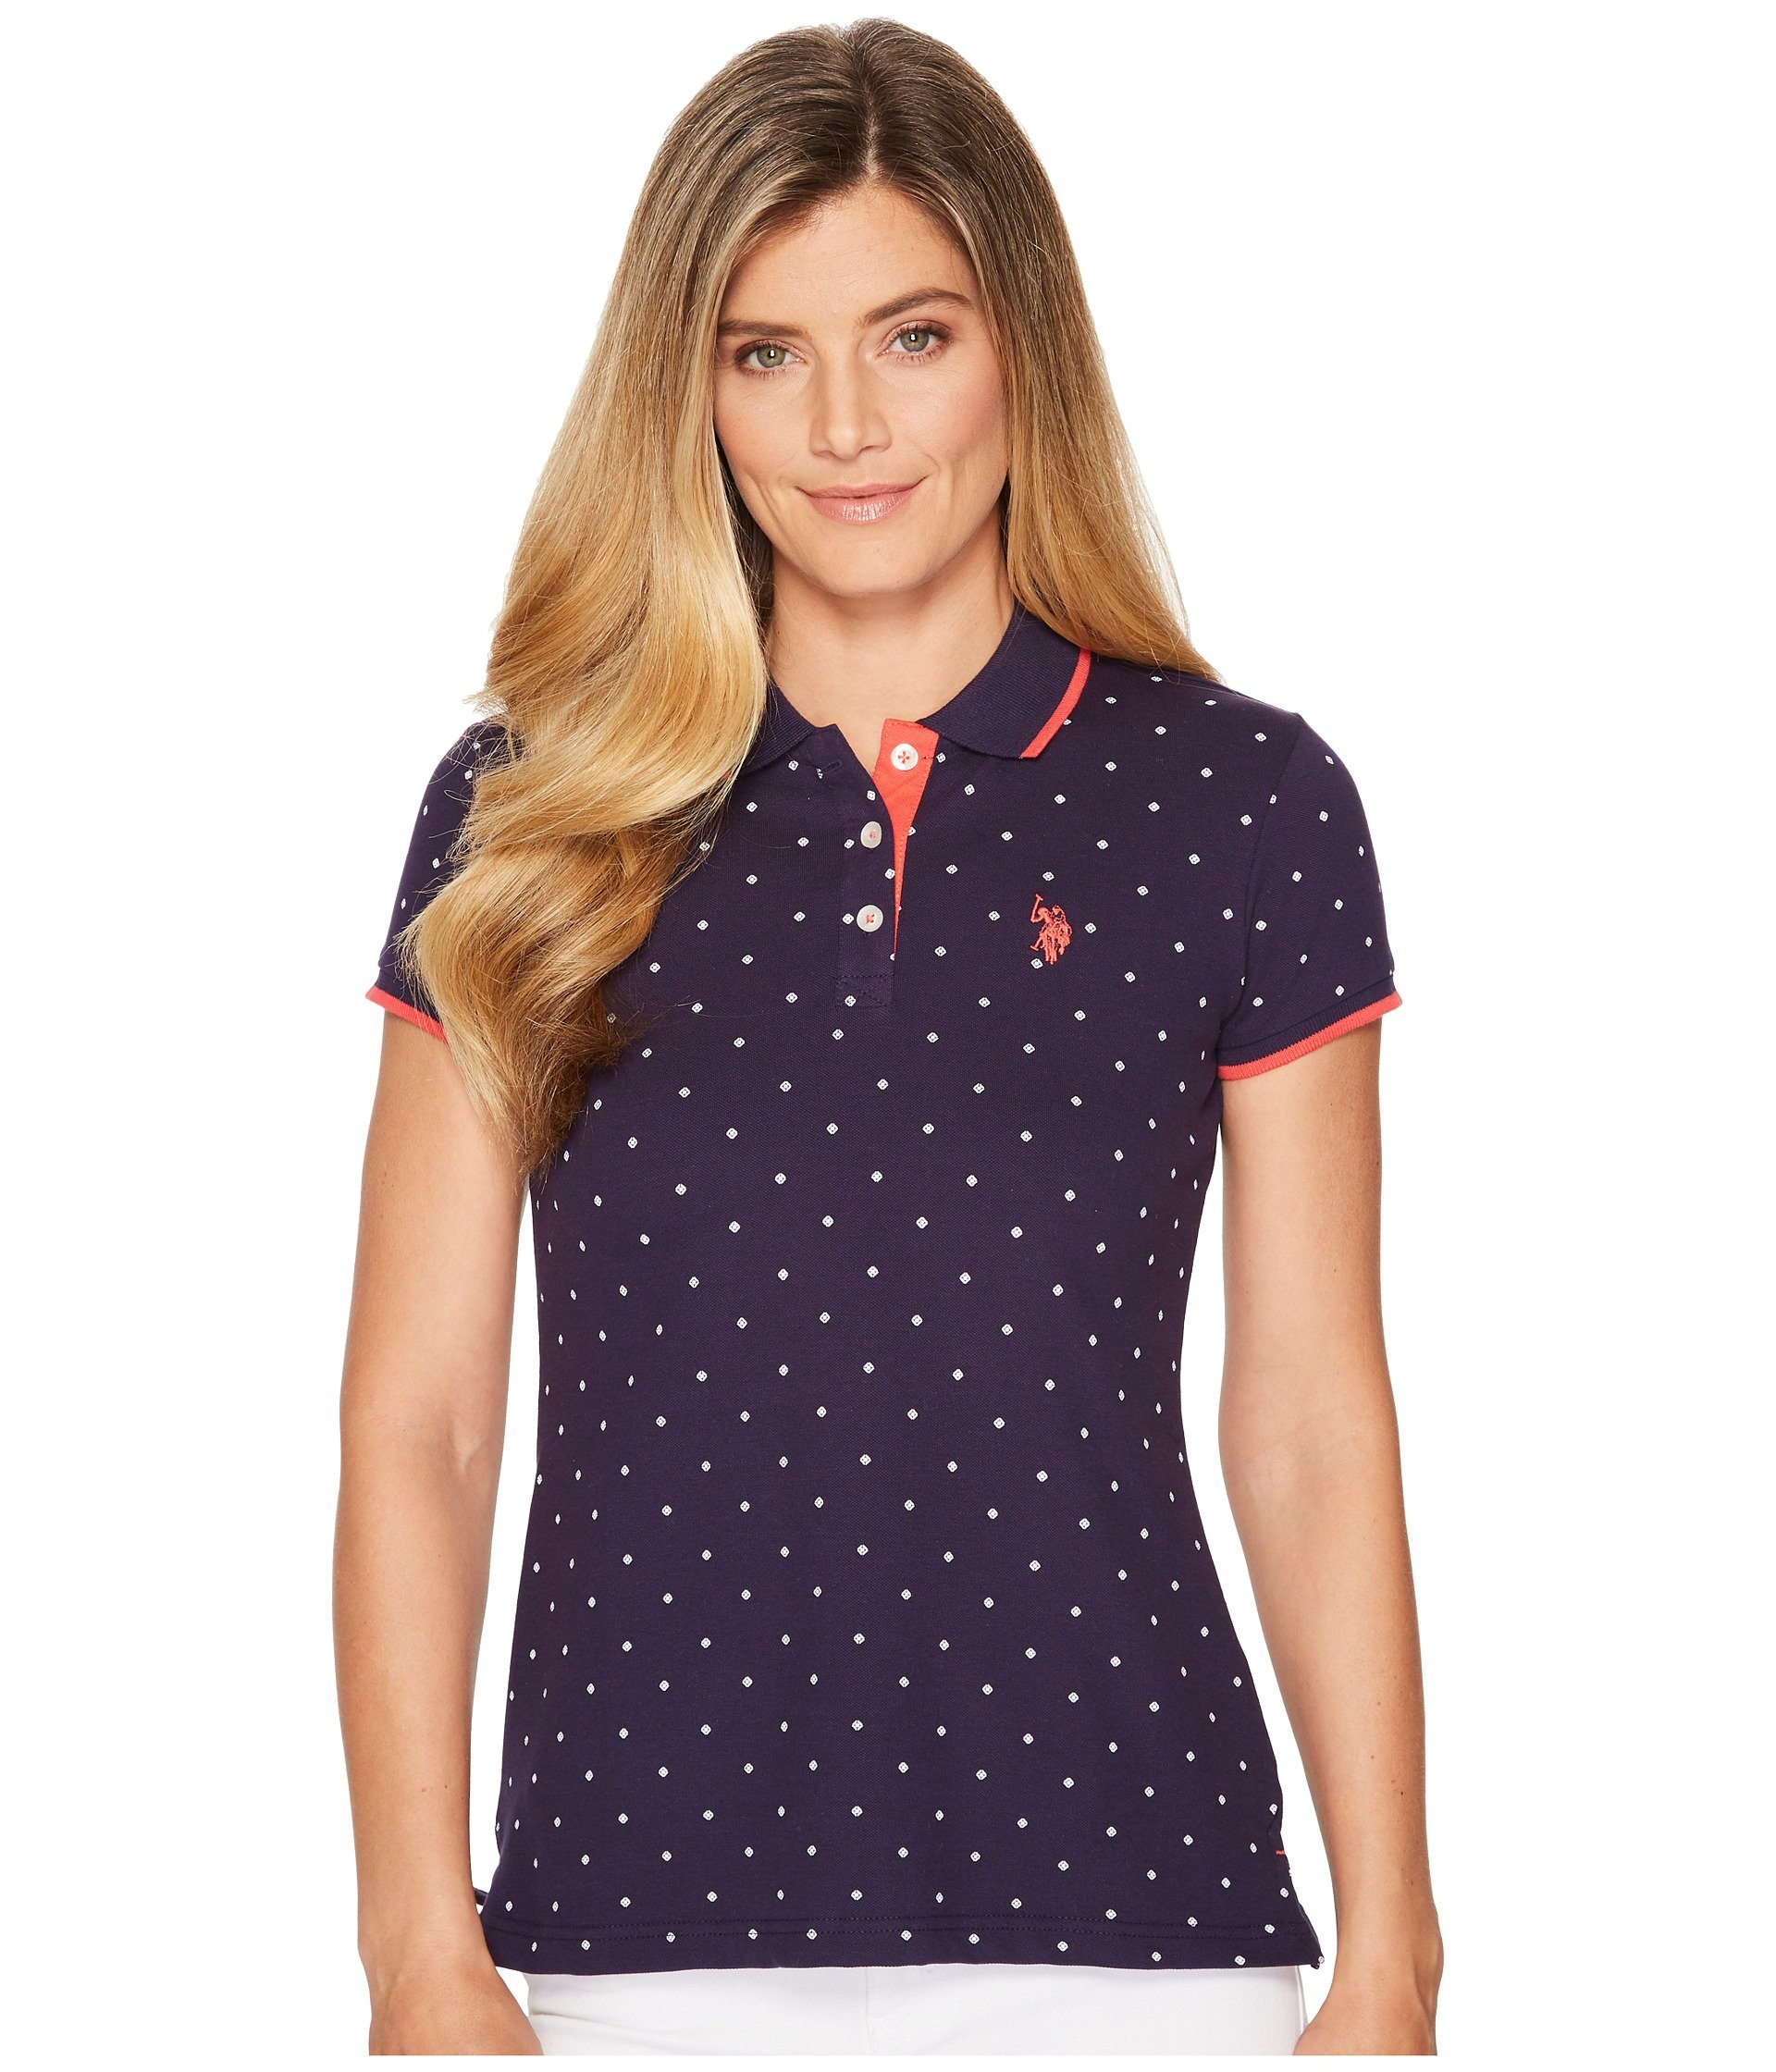 Camiseta Tipo Polo para Mujer U.S. POLO ASSN. Stretch Pique Dot Print Polo Shirt  + U.S. POLO ASSN. en VeoyCompro.net